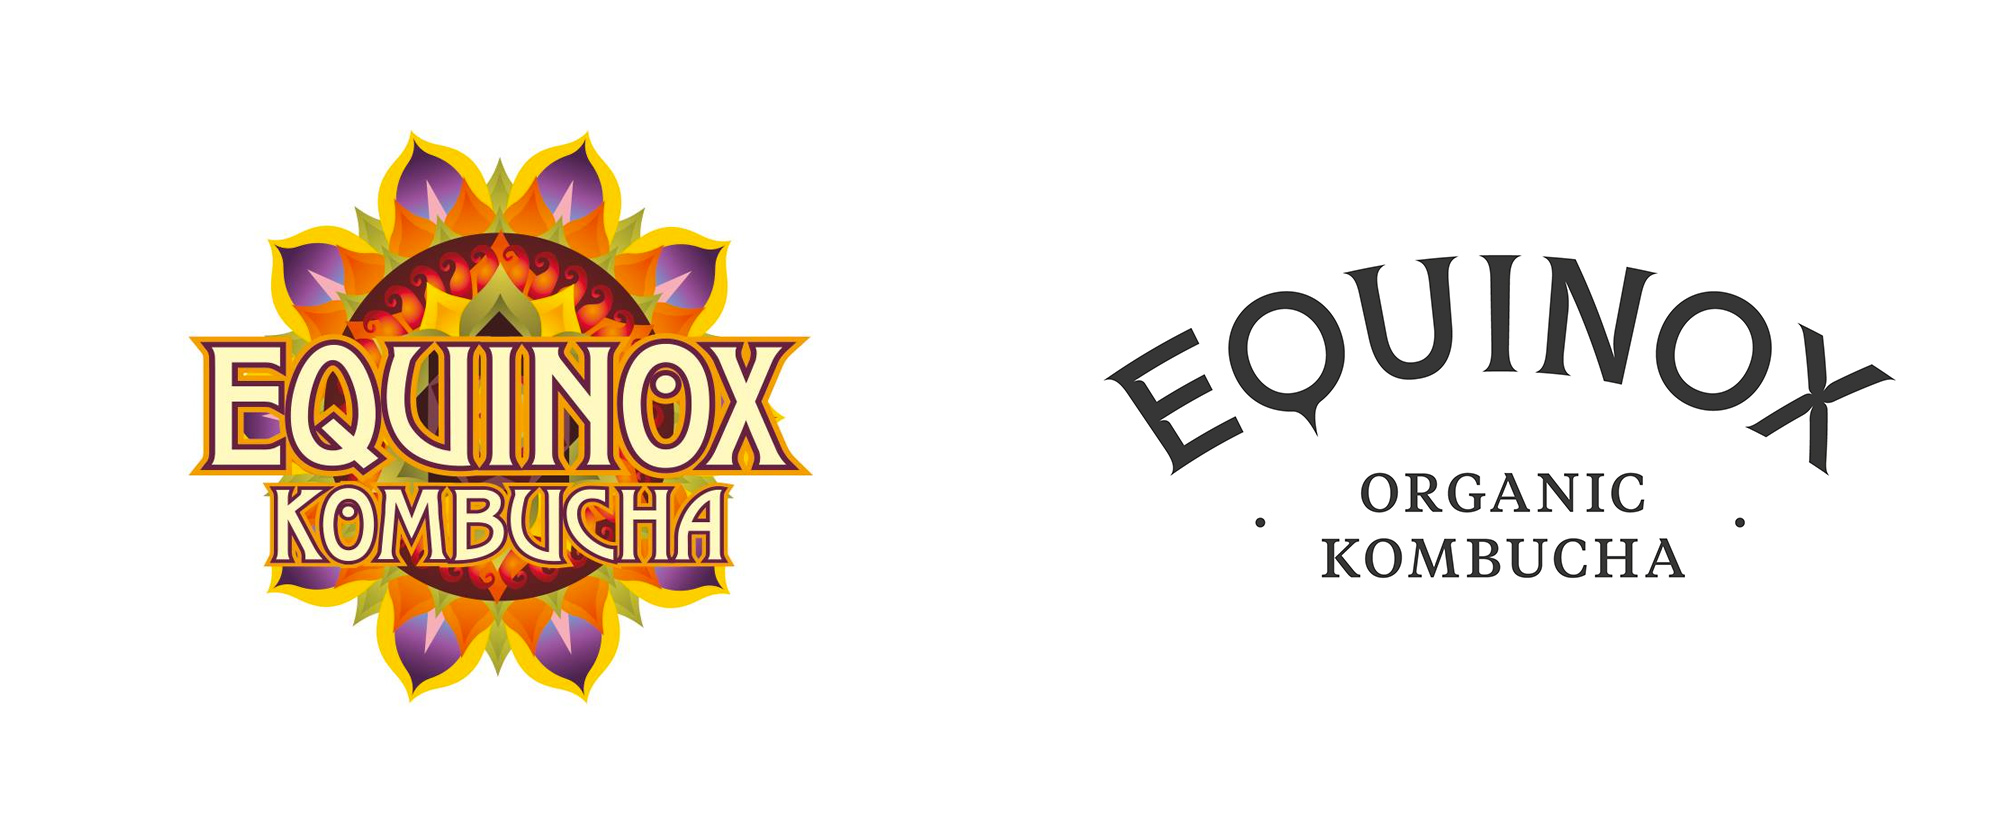 New Logo and Packaging for Equinox Organic Kombucha by Better